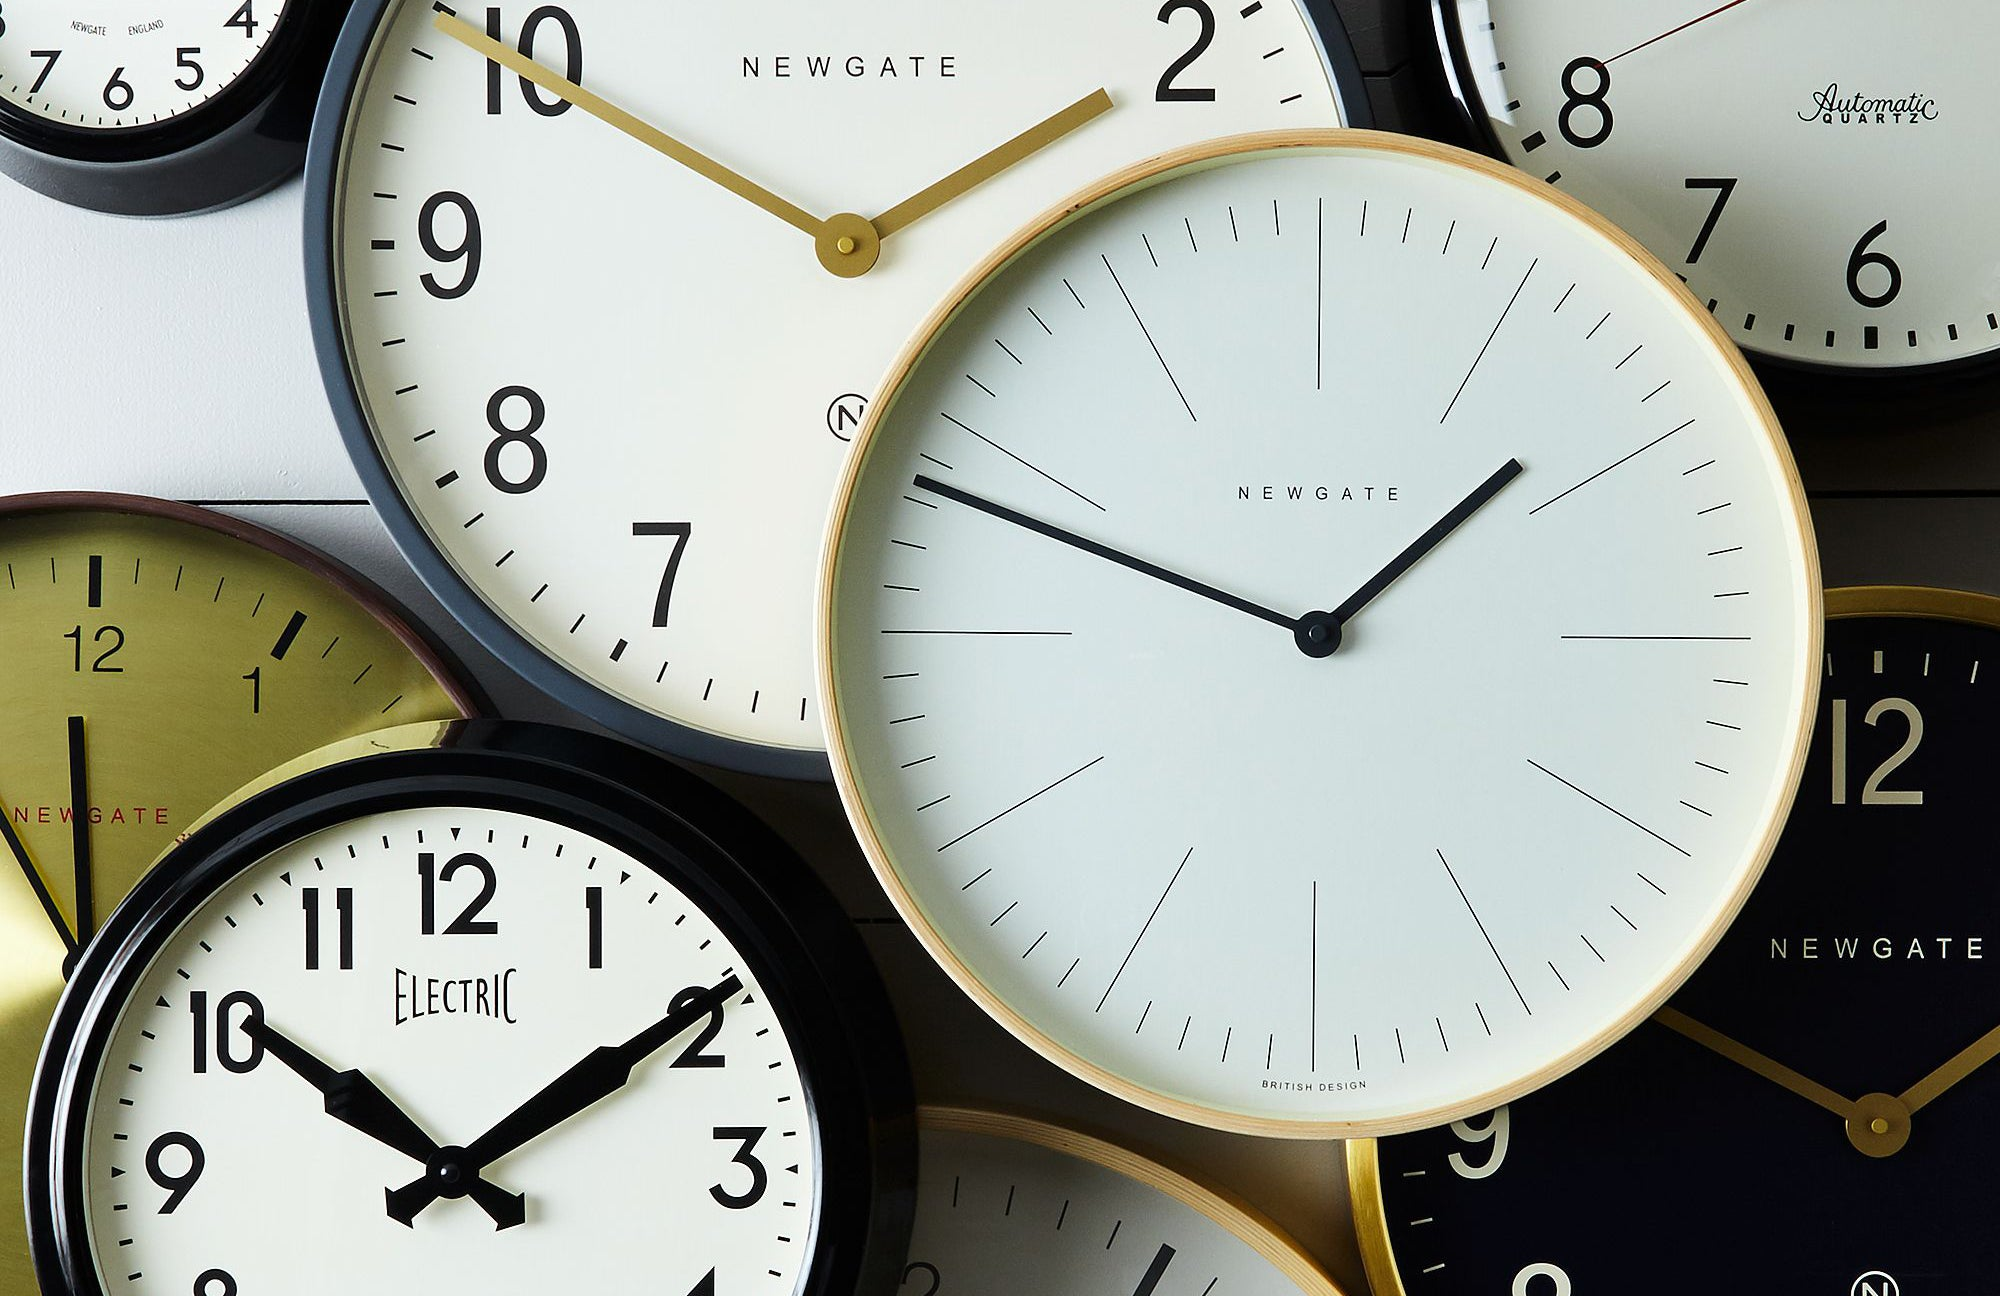 Newgate Clocks and Watches in the US